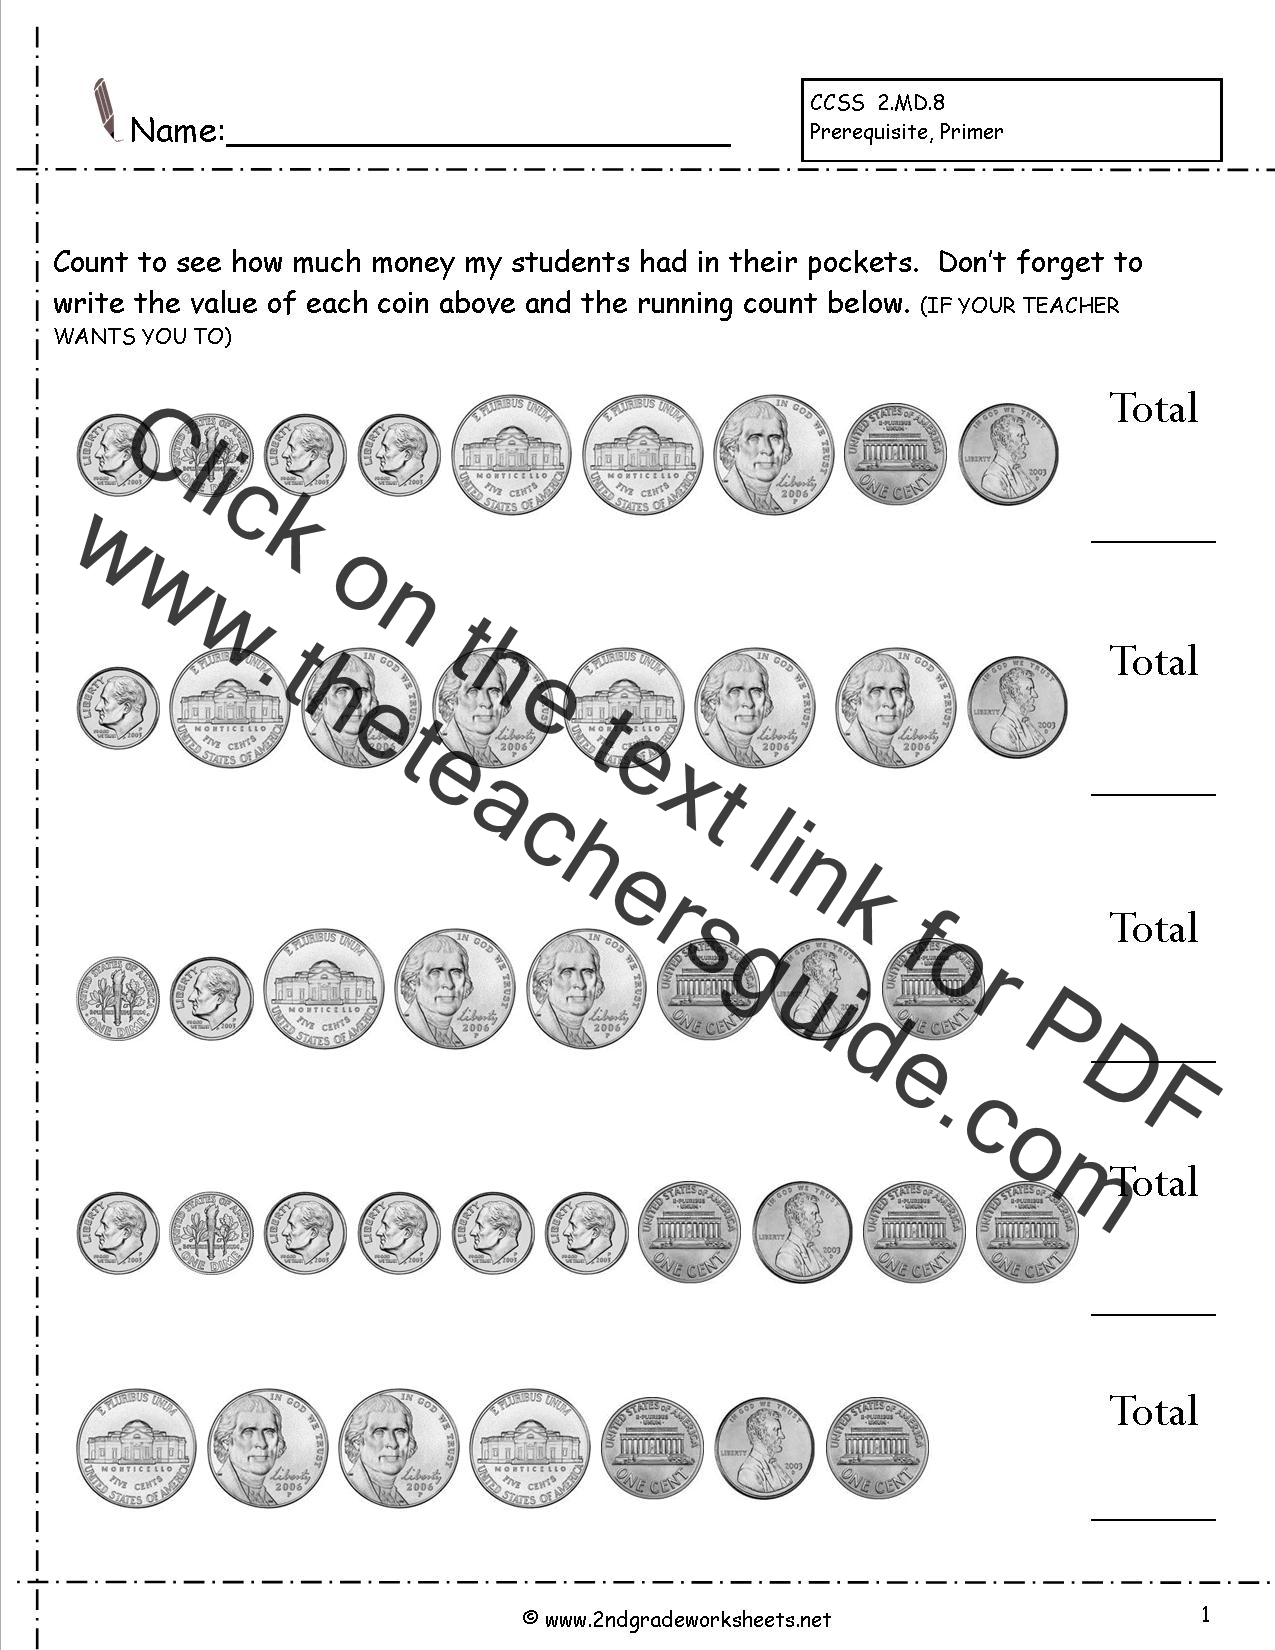 Drawing Coins Worksheets Worksheets for all | Download and Share ...